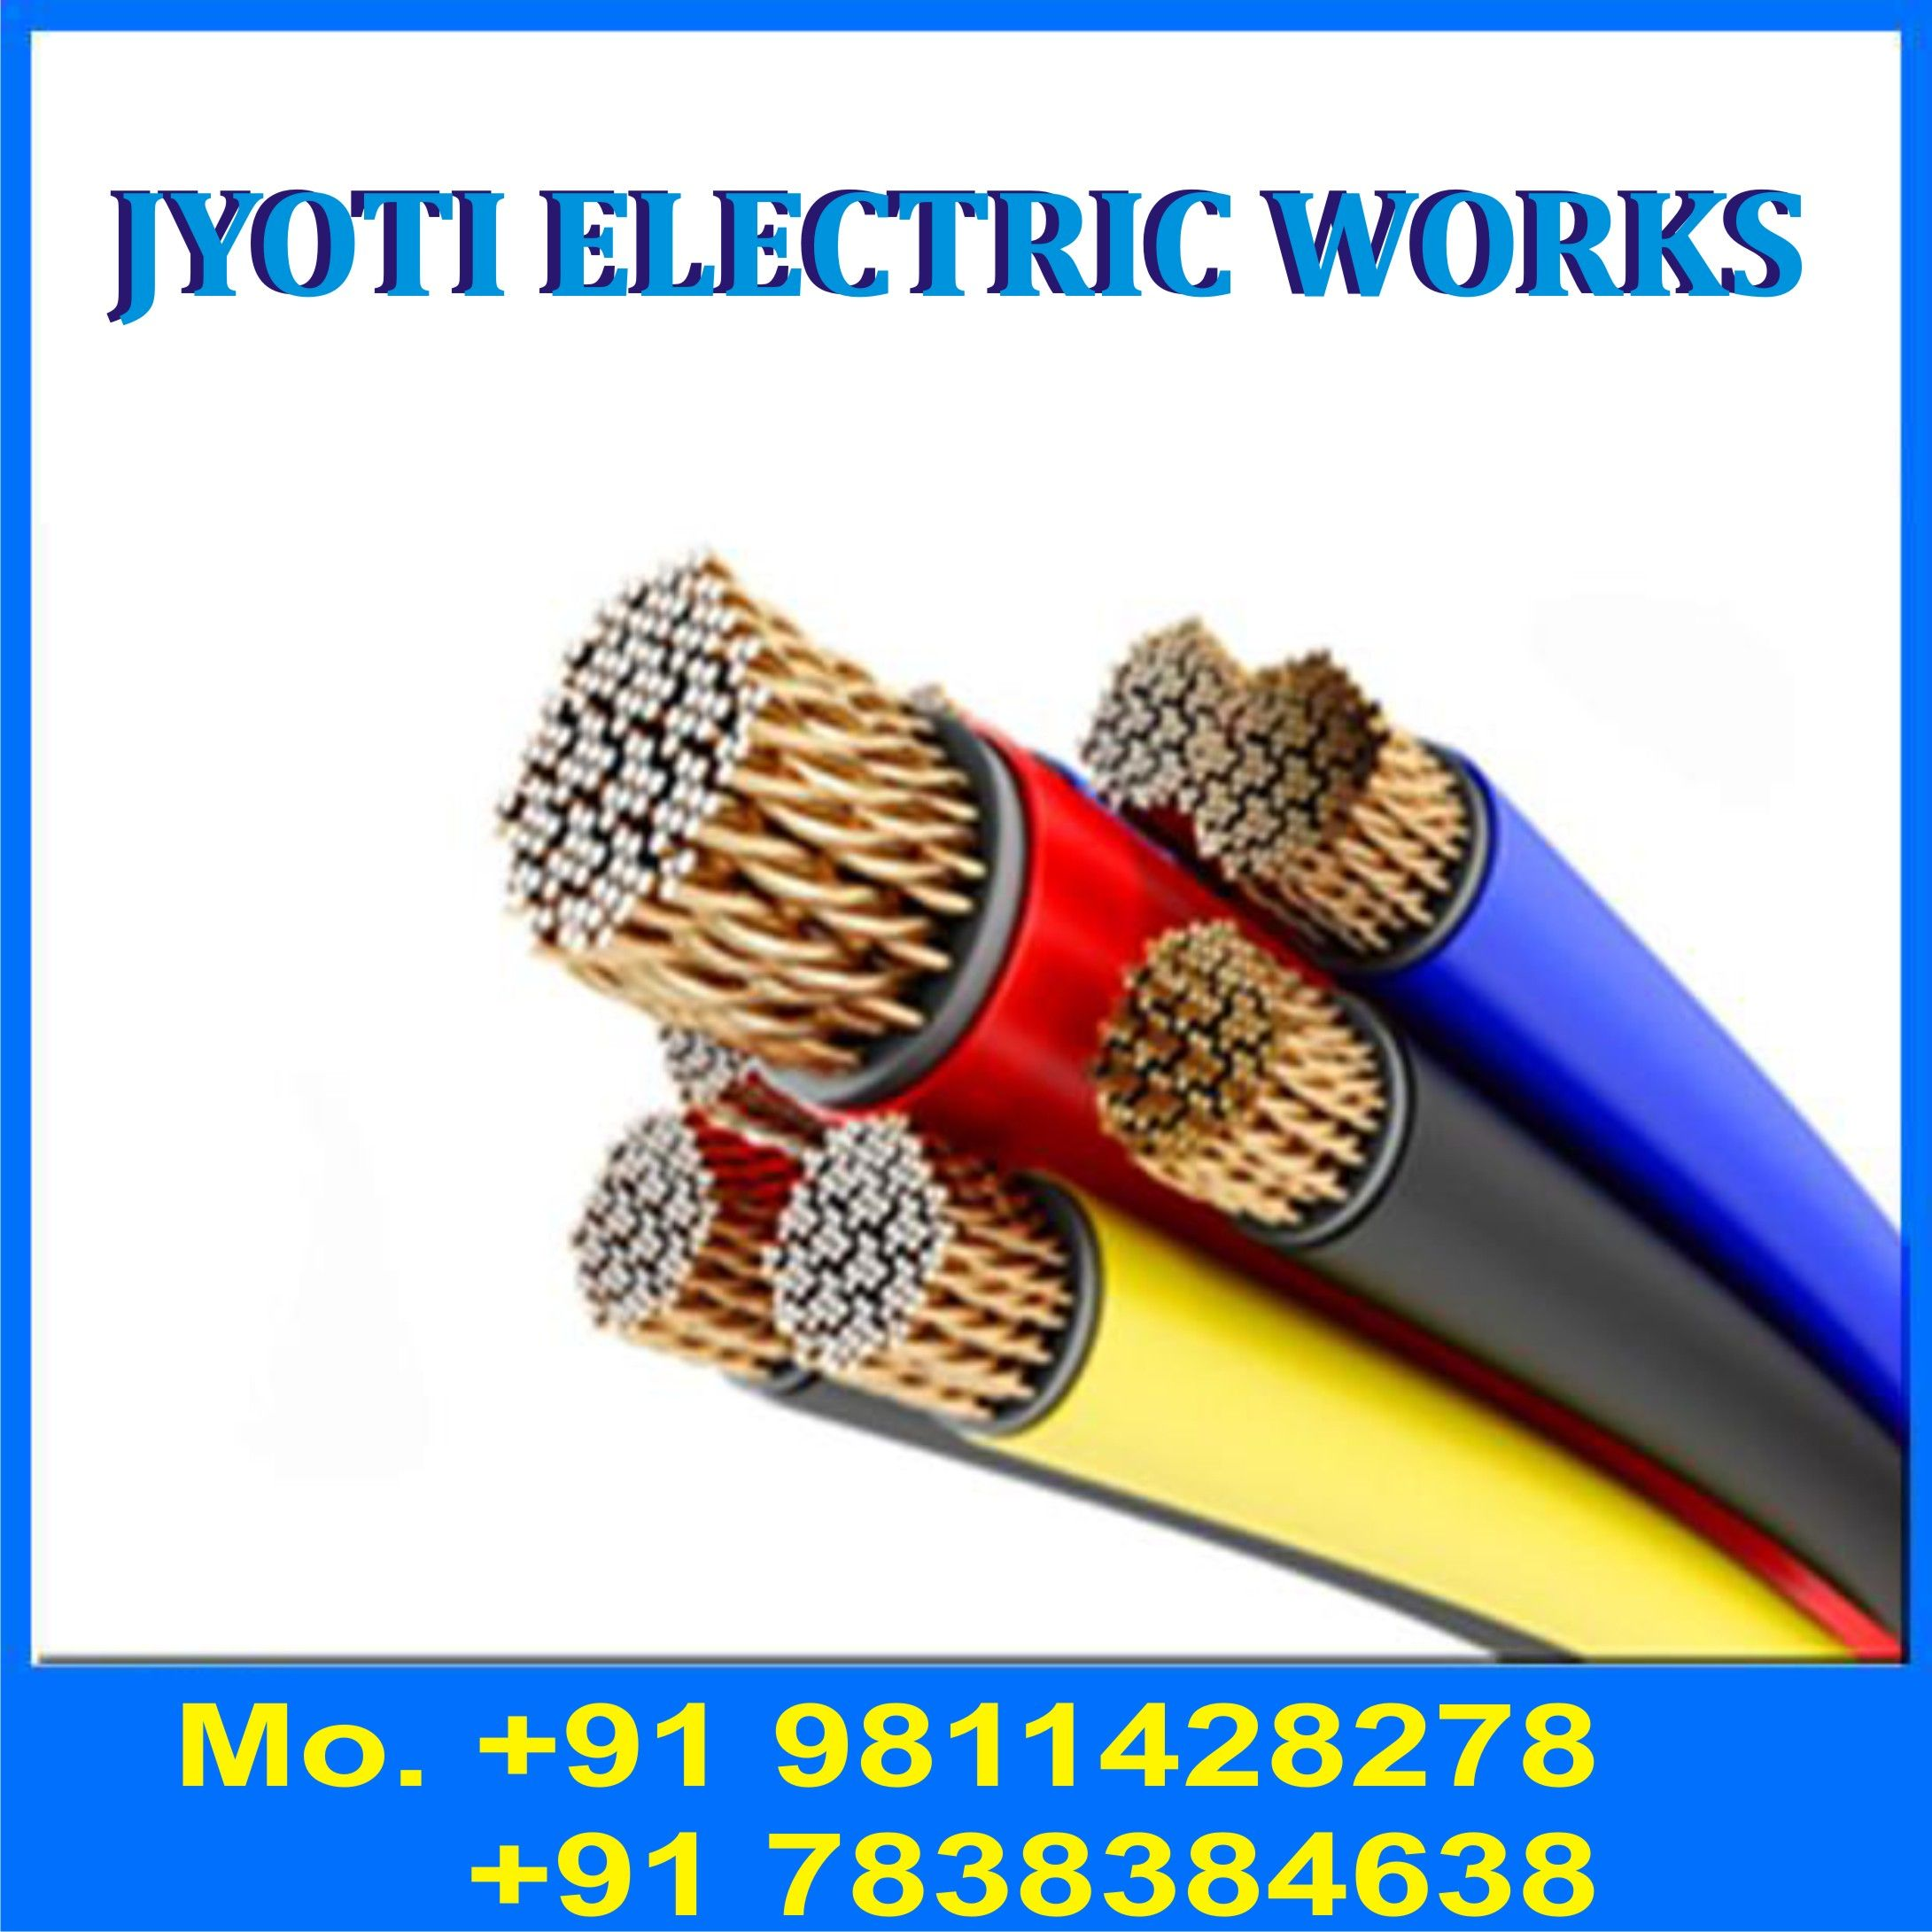 Jyoti Electric Works Is A Reputed Leading Switchboard Manufacturer In Dsiidc Industrial Area Narela Delhi India Electricity It Works Delhi India